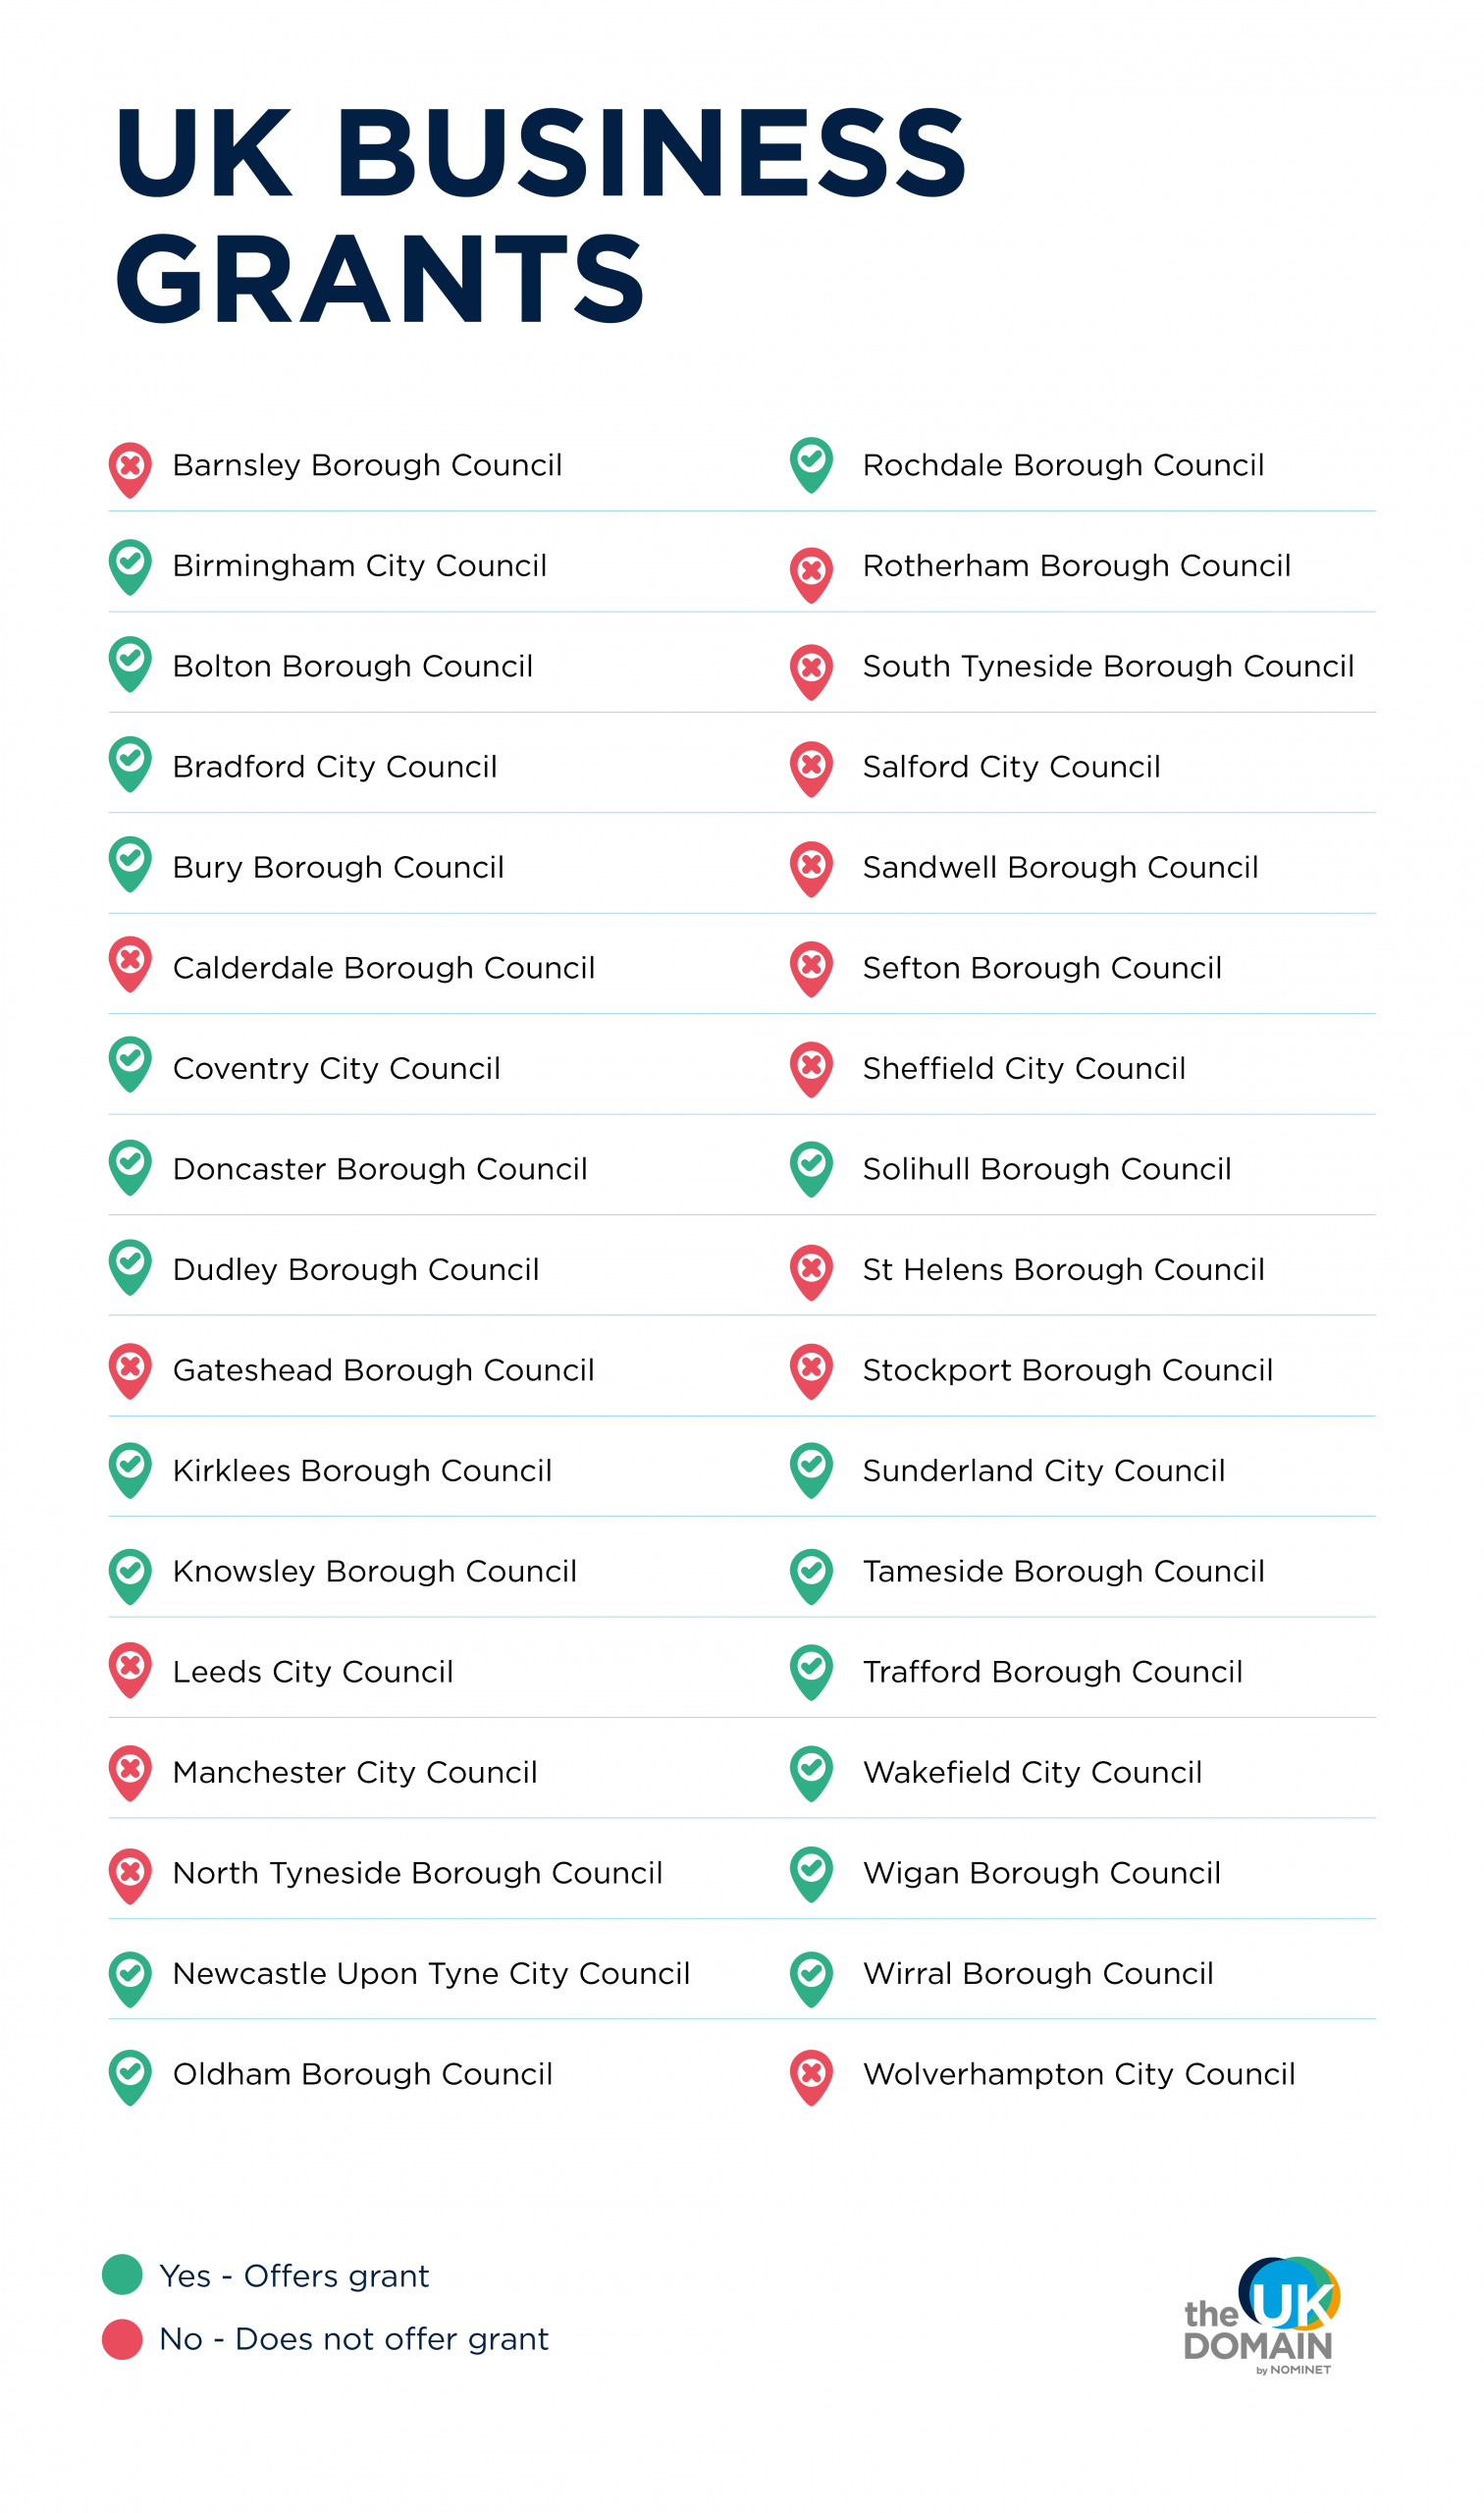 UK Councils that offer business grants